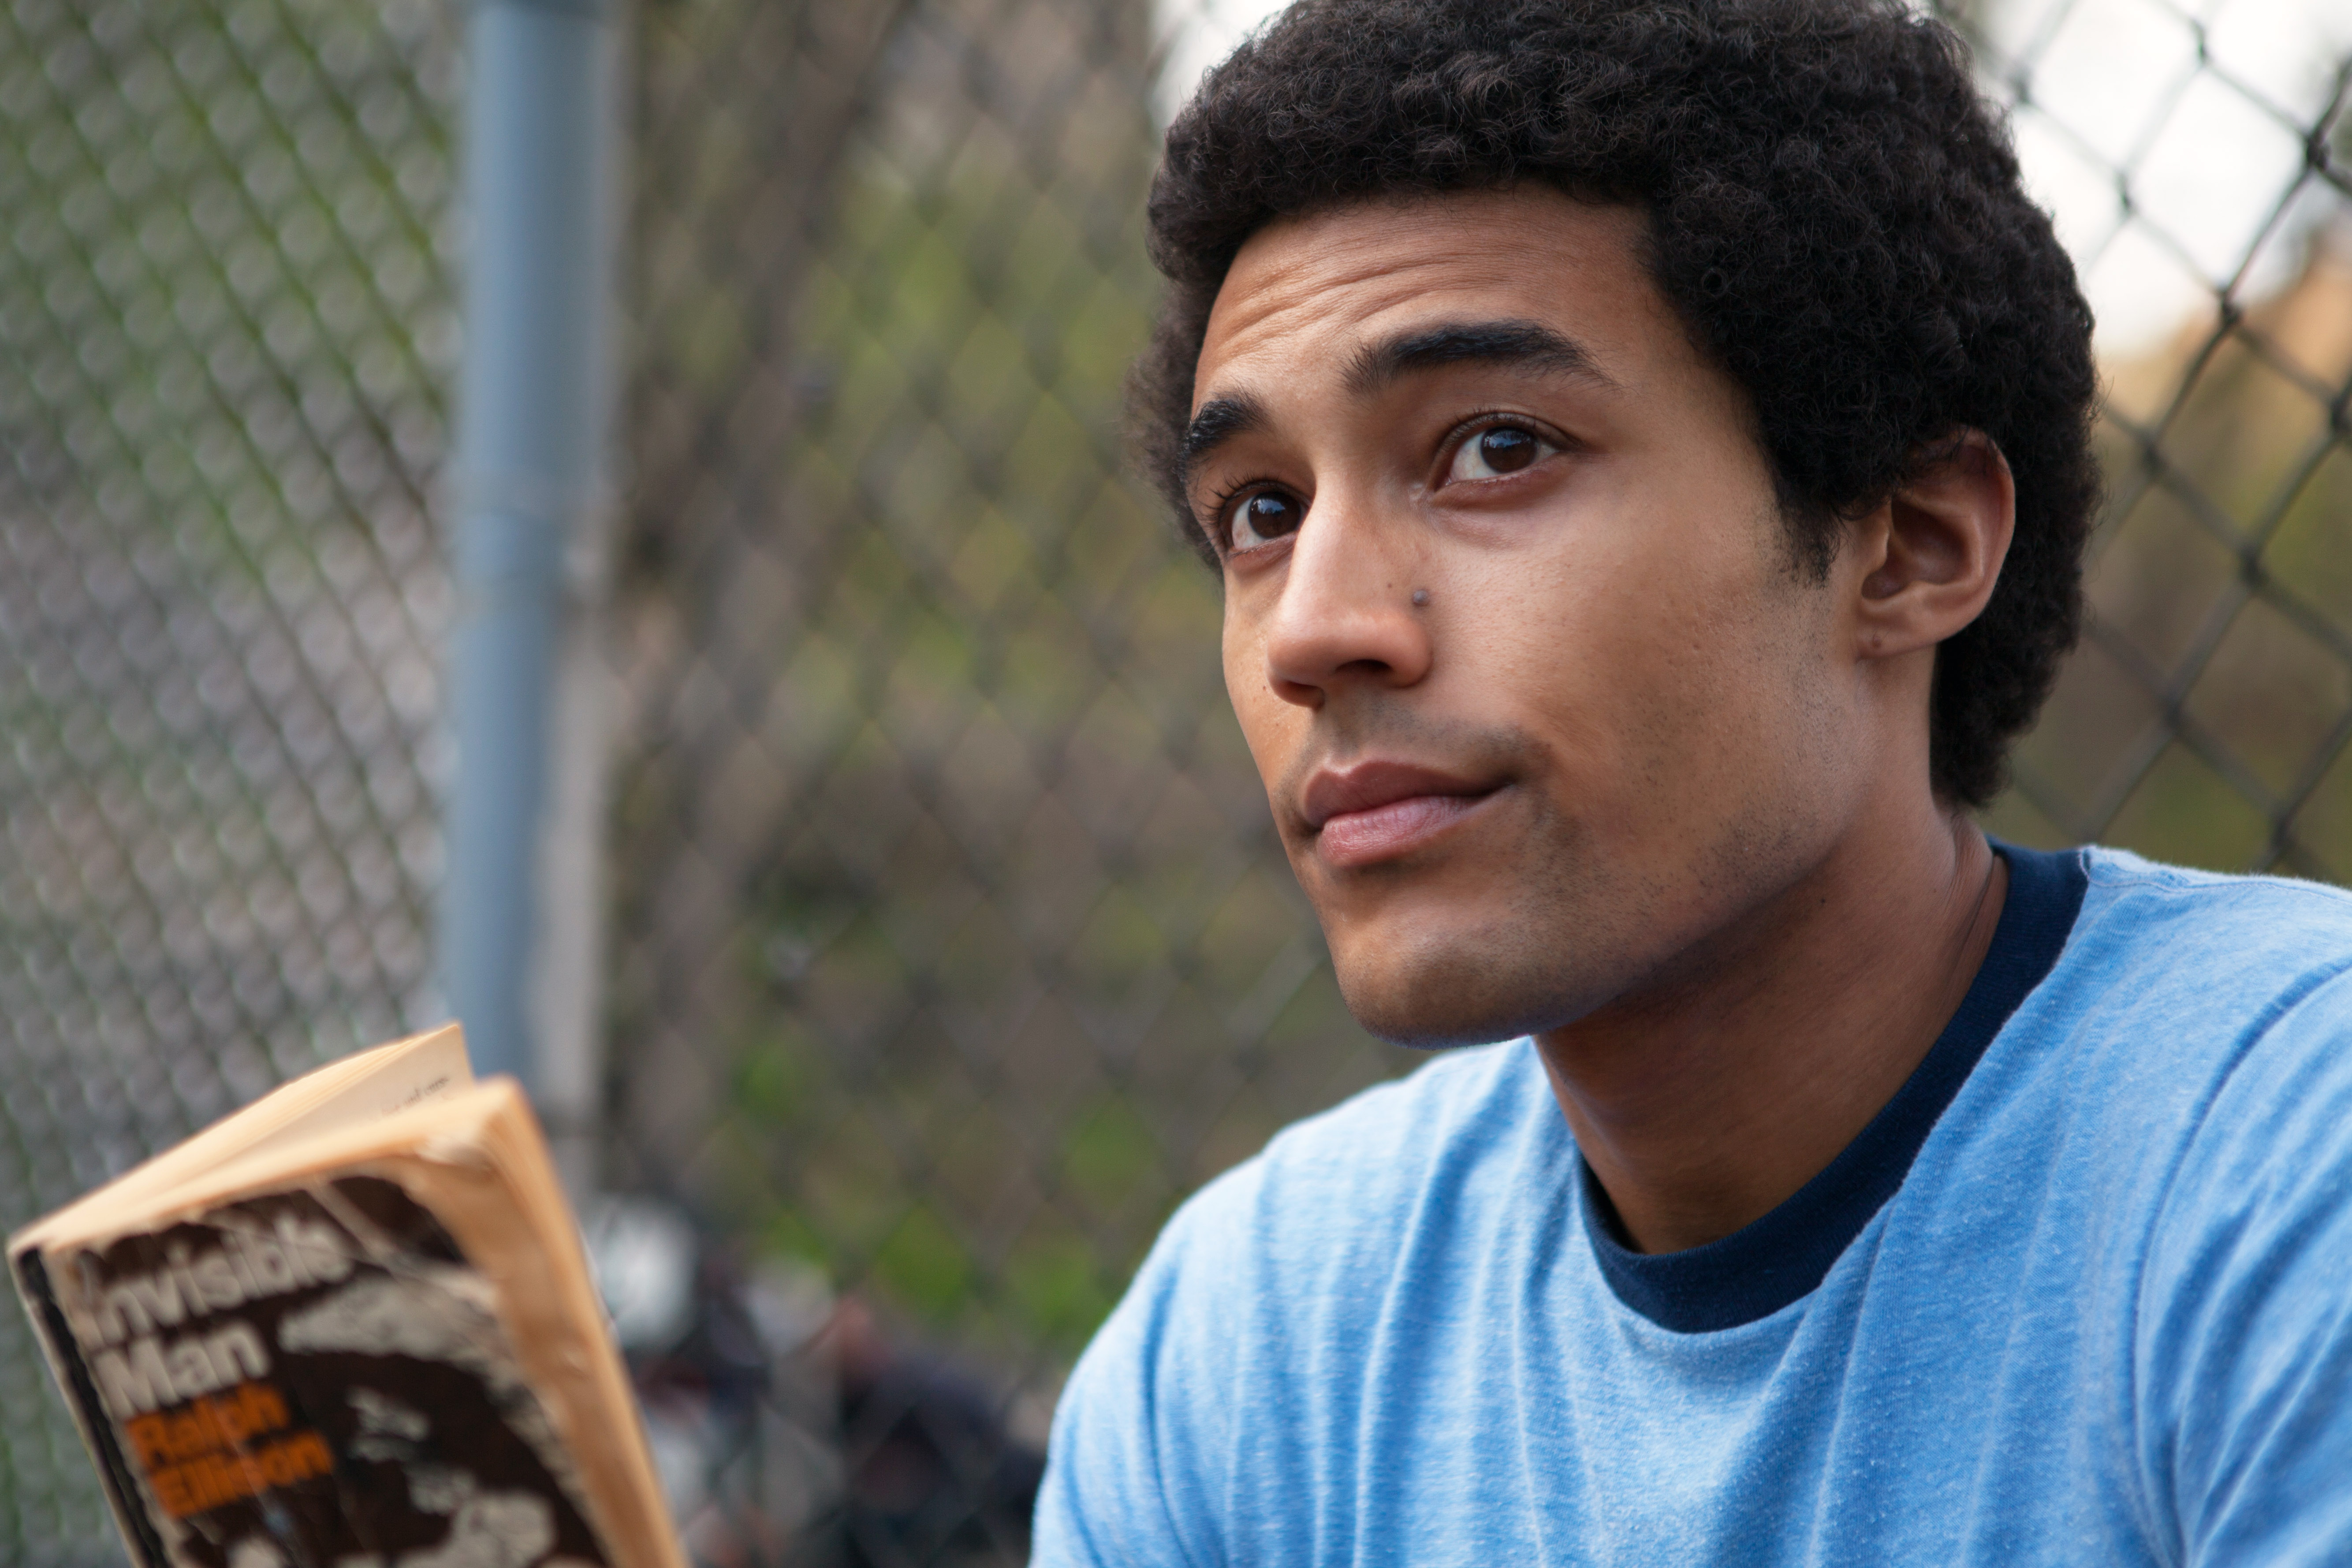 New BARRY Trailer Examines a Young Obama before Politics, Michelle and the Presidency